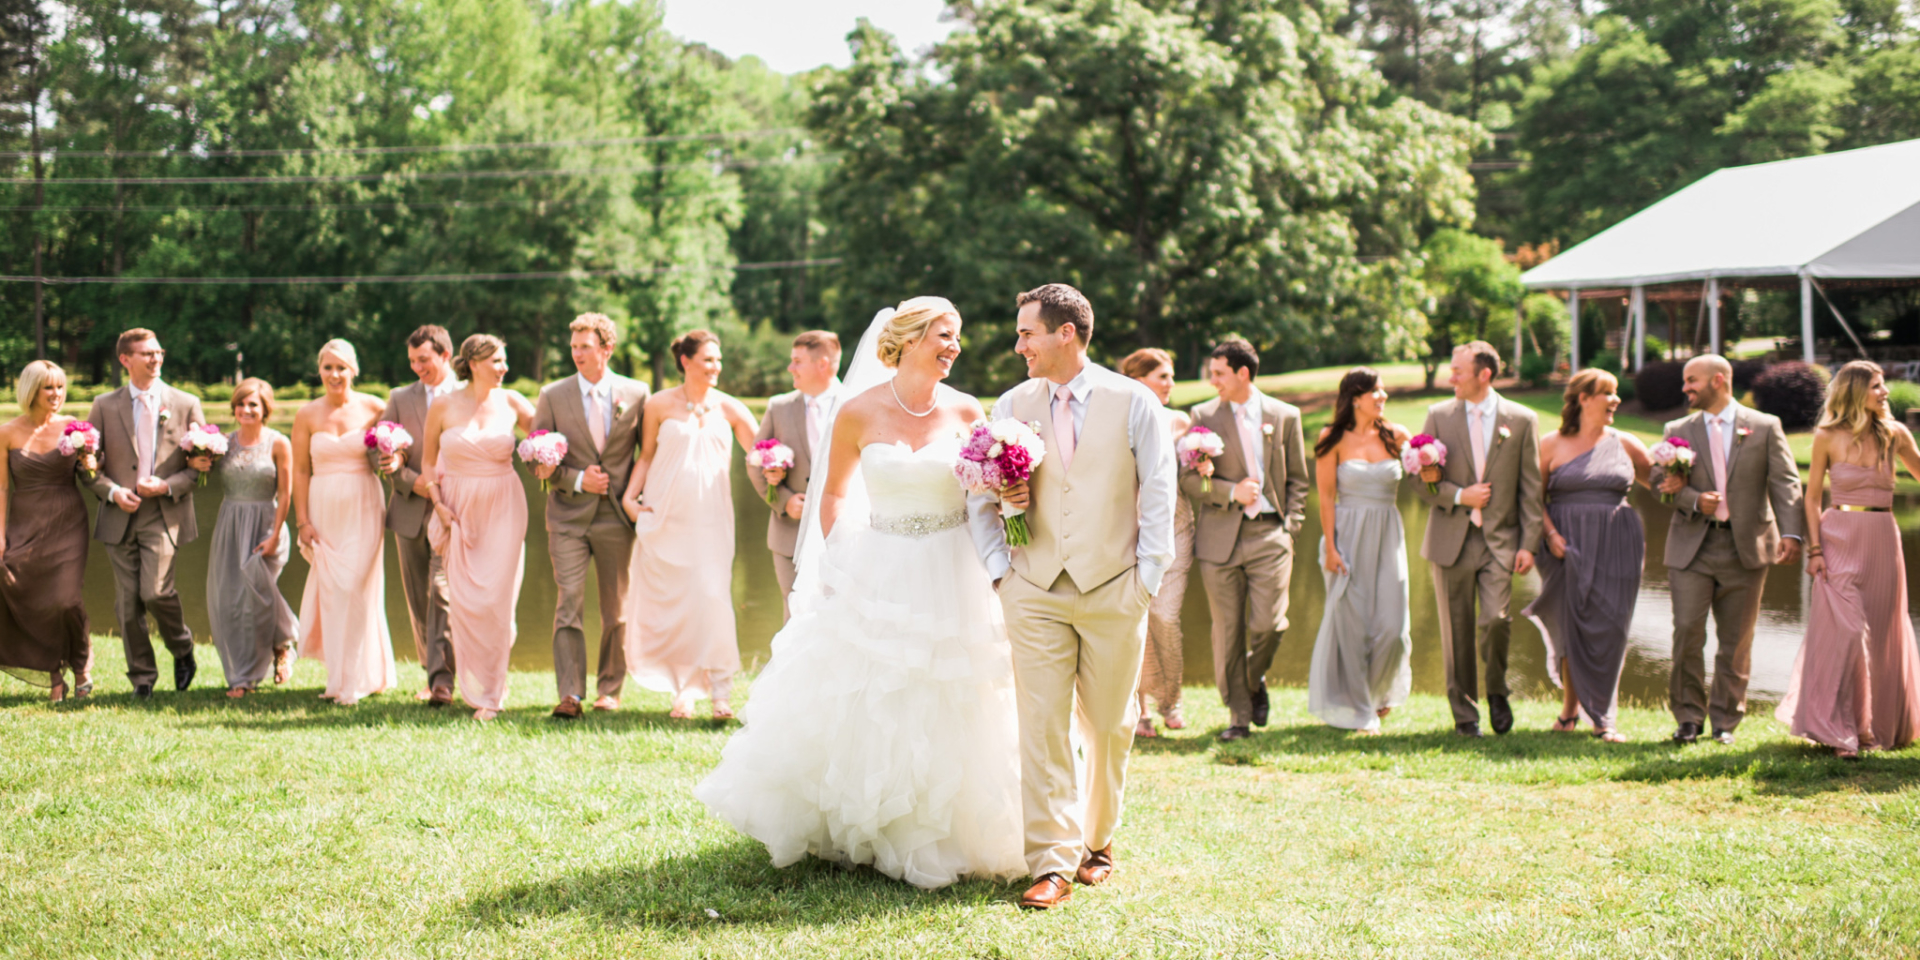 intimate wedding planning services raleigh nc